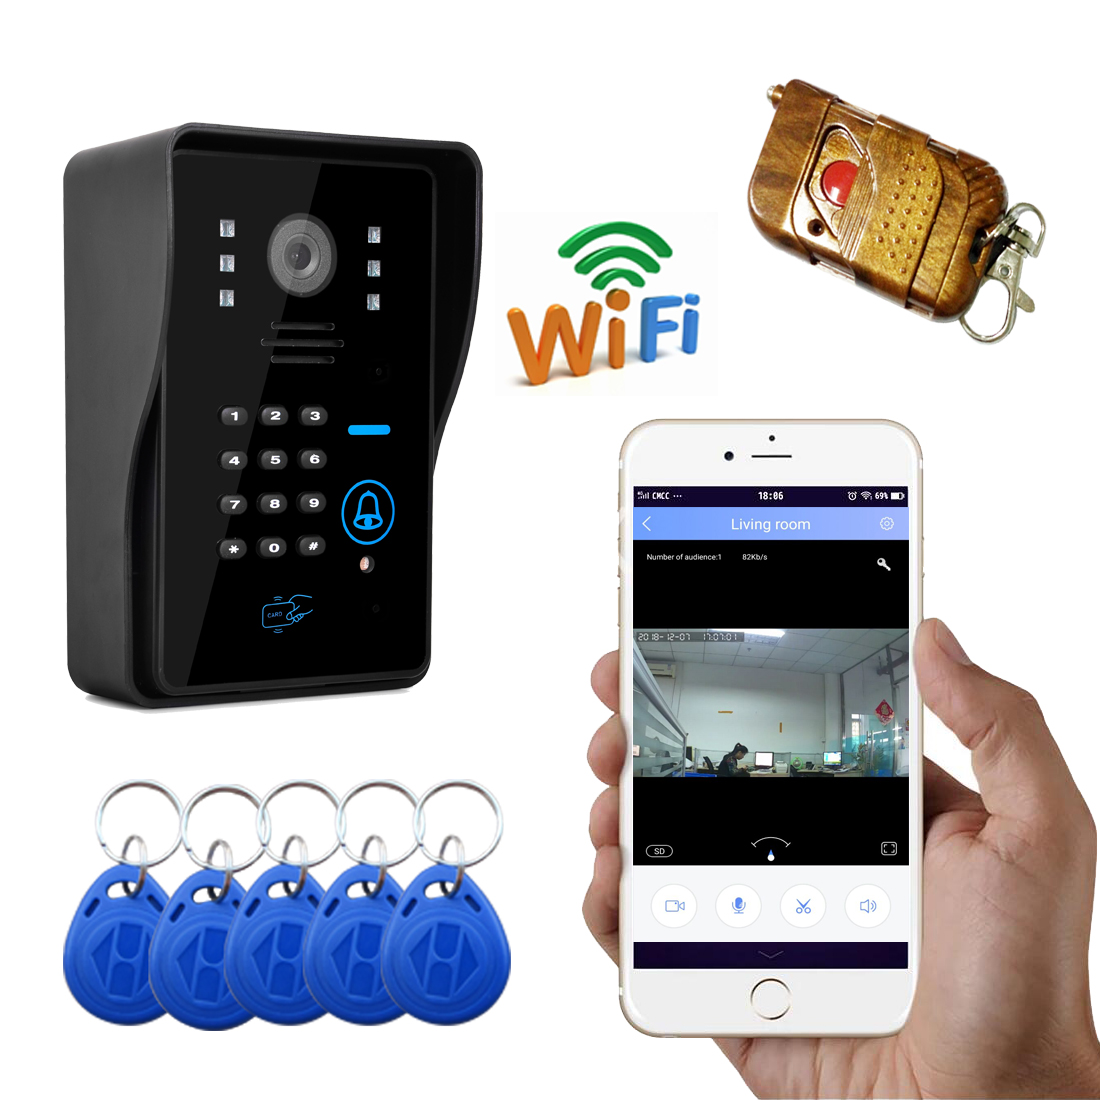 720P WIFI Wireless Video Door Phone Support IOS Android For IPad Smart Phone Tablet Control Wireless Intercom